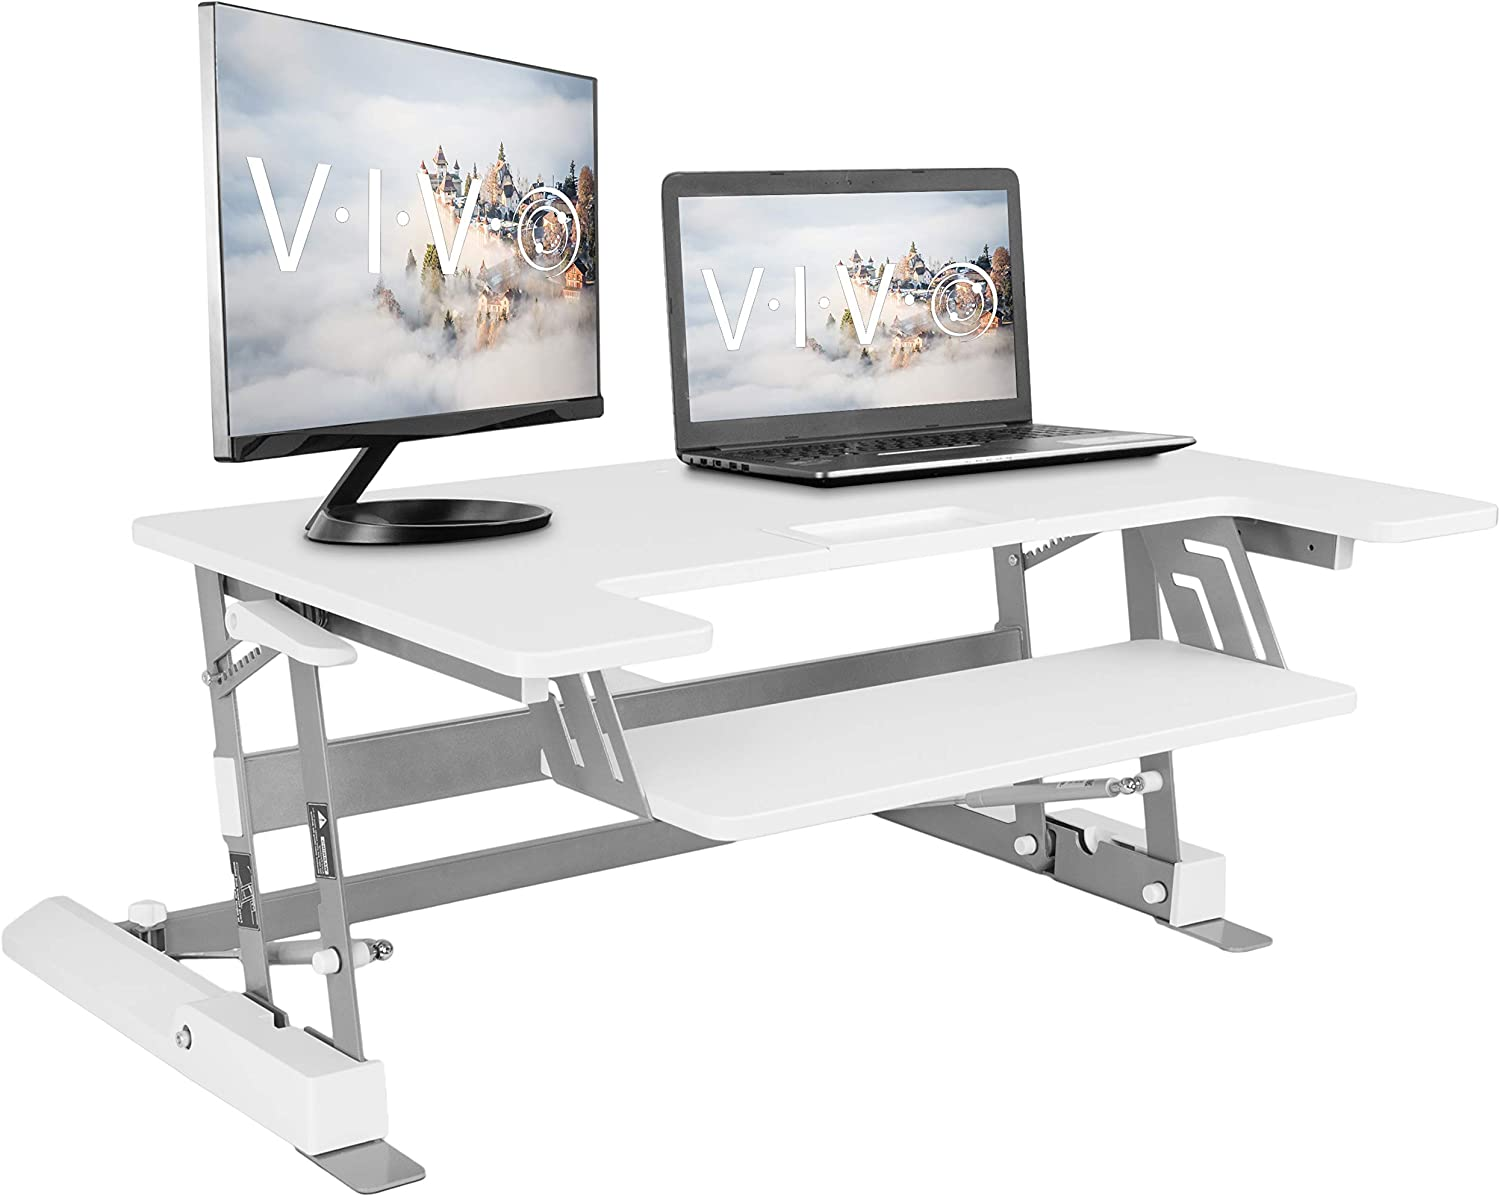 Vivo Sit-stand Workstation For Dual Monitors